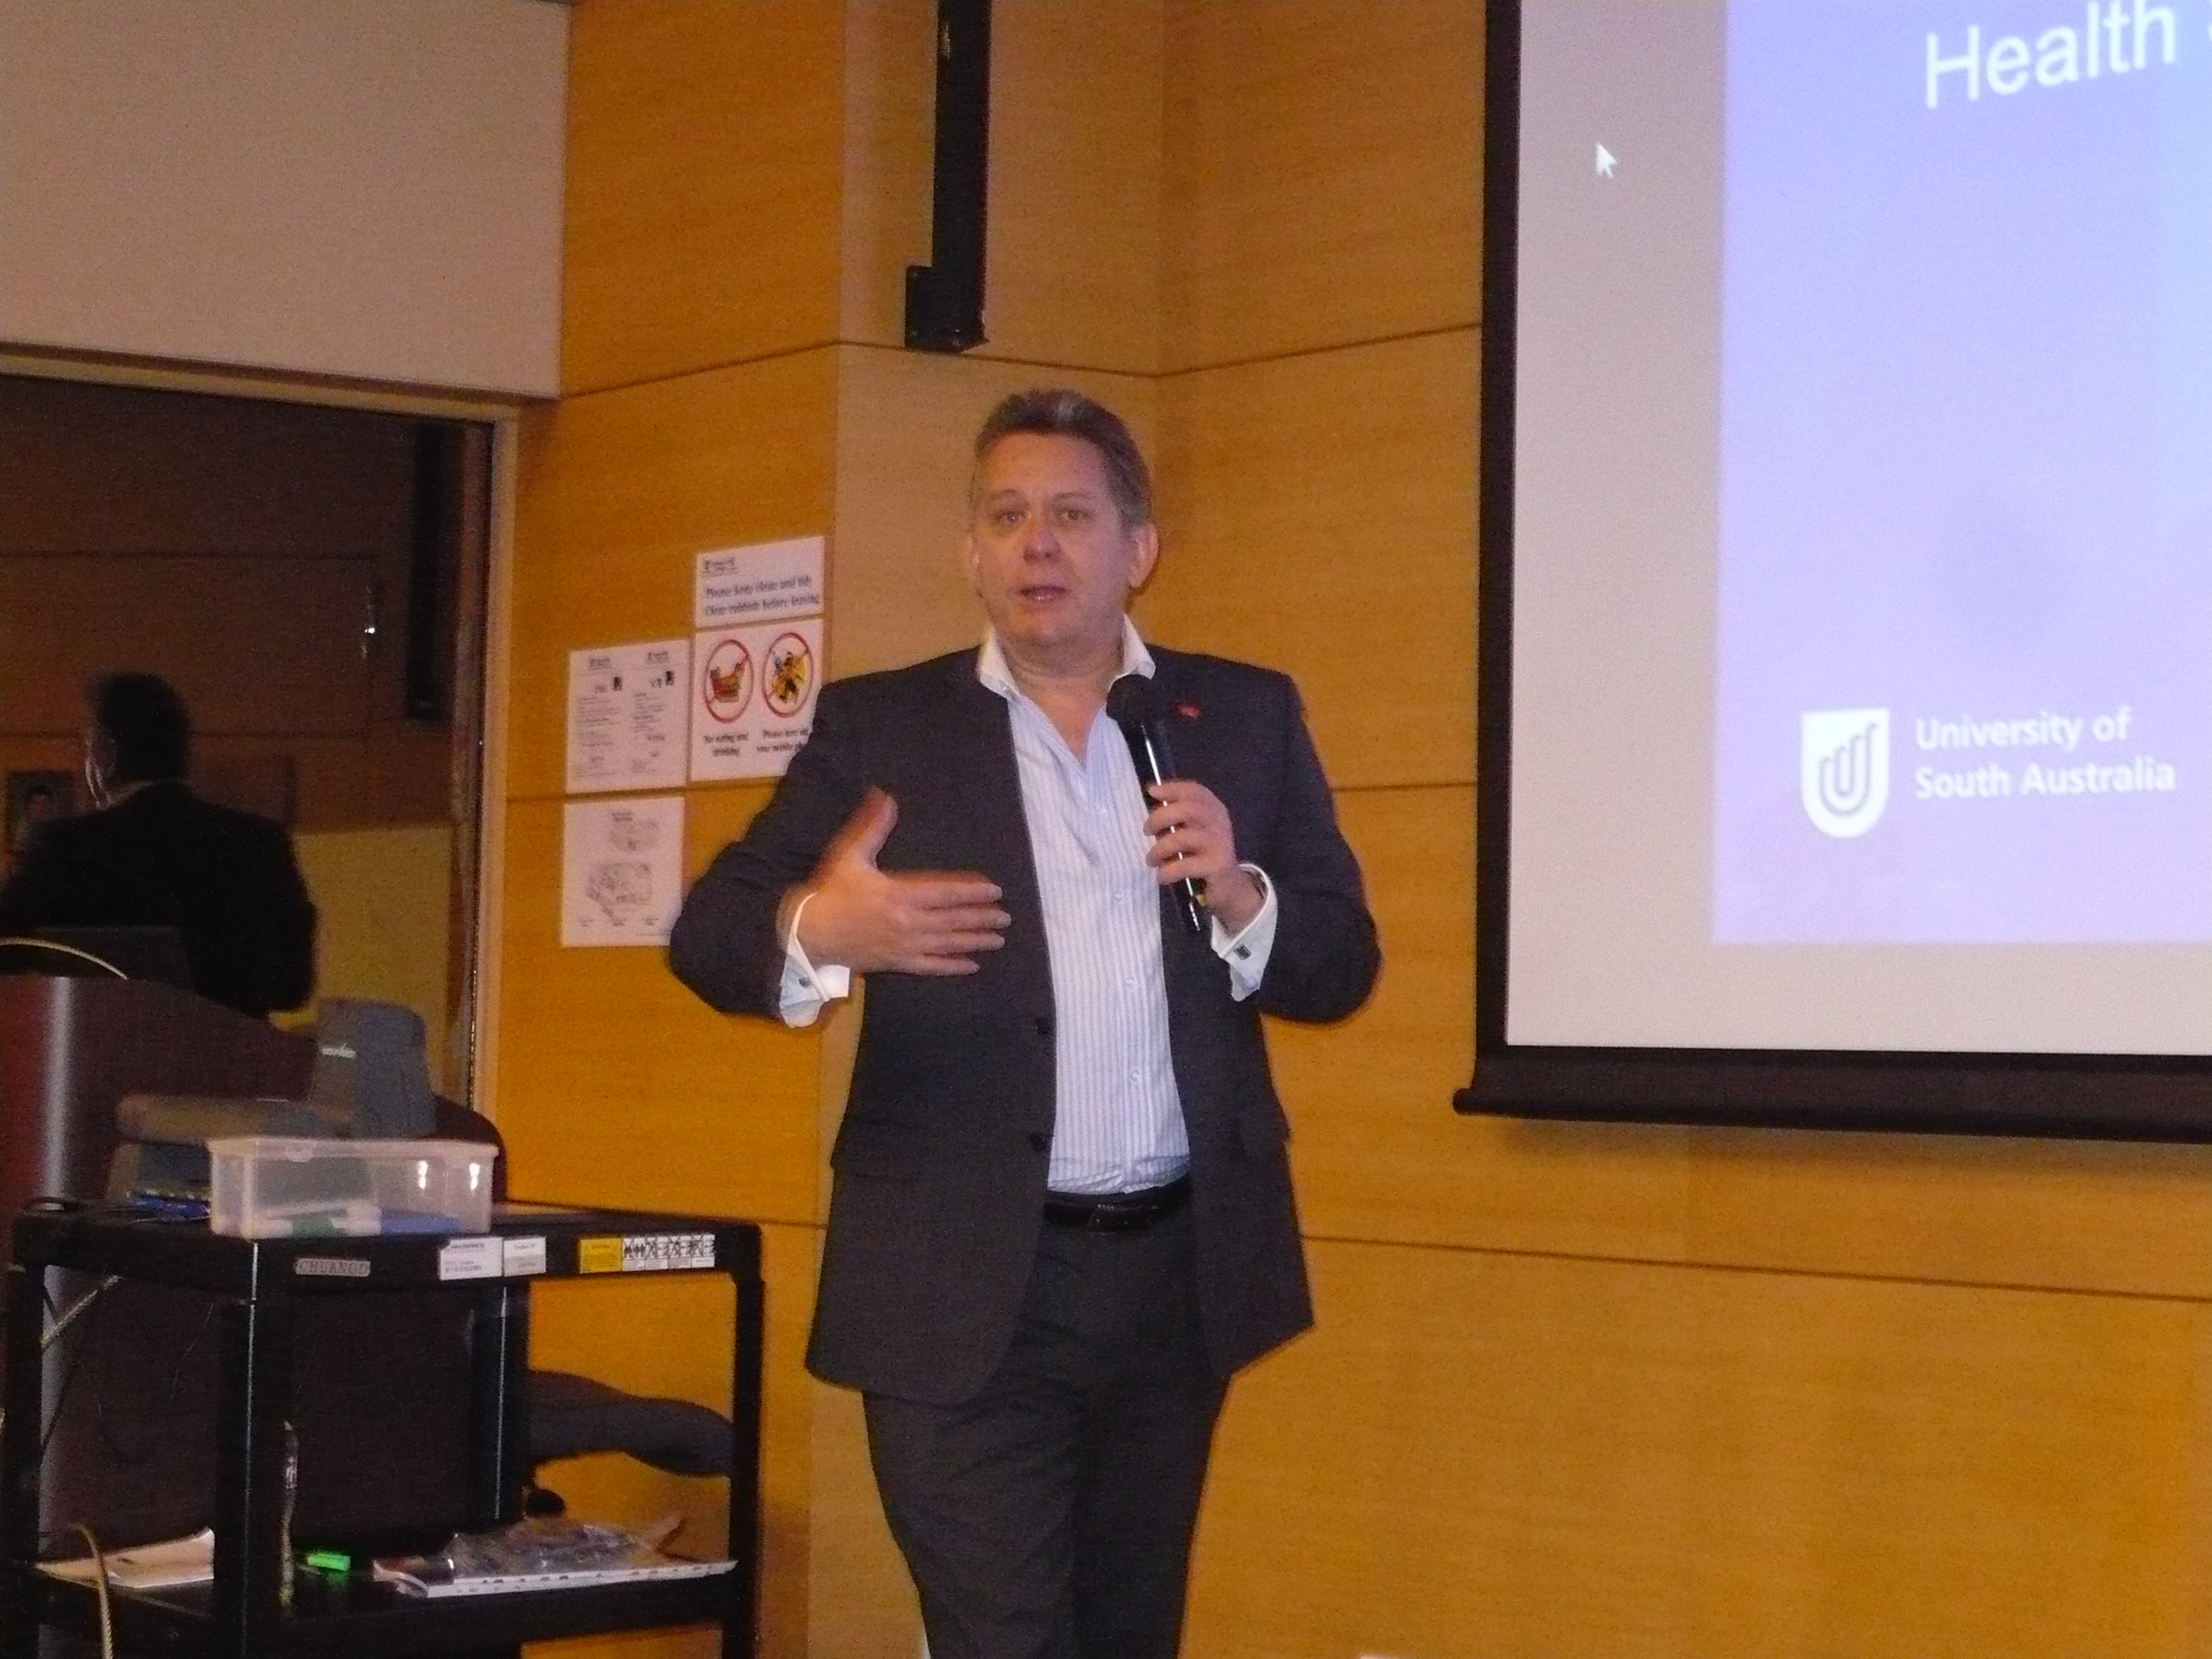 Programme Talk from University of South Australia - Photo - 7